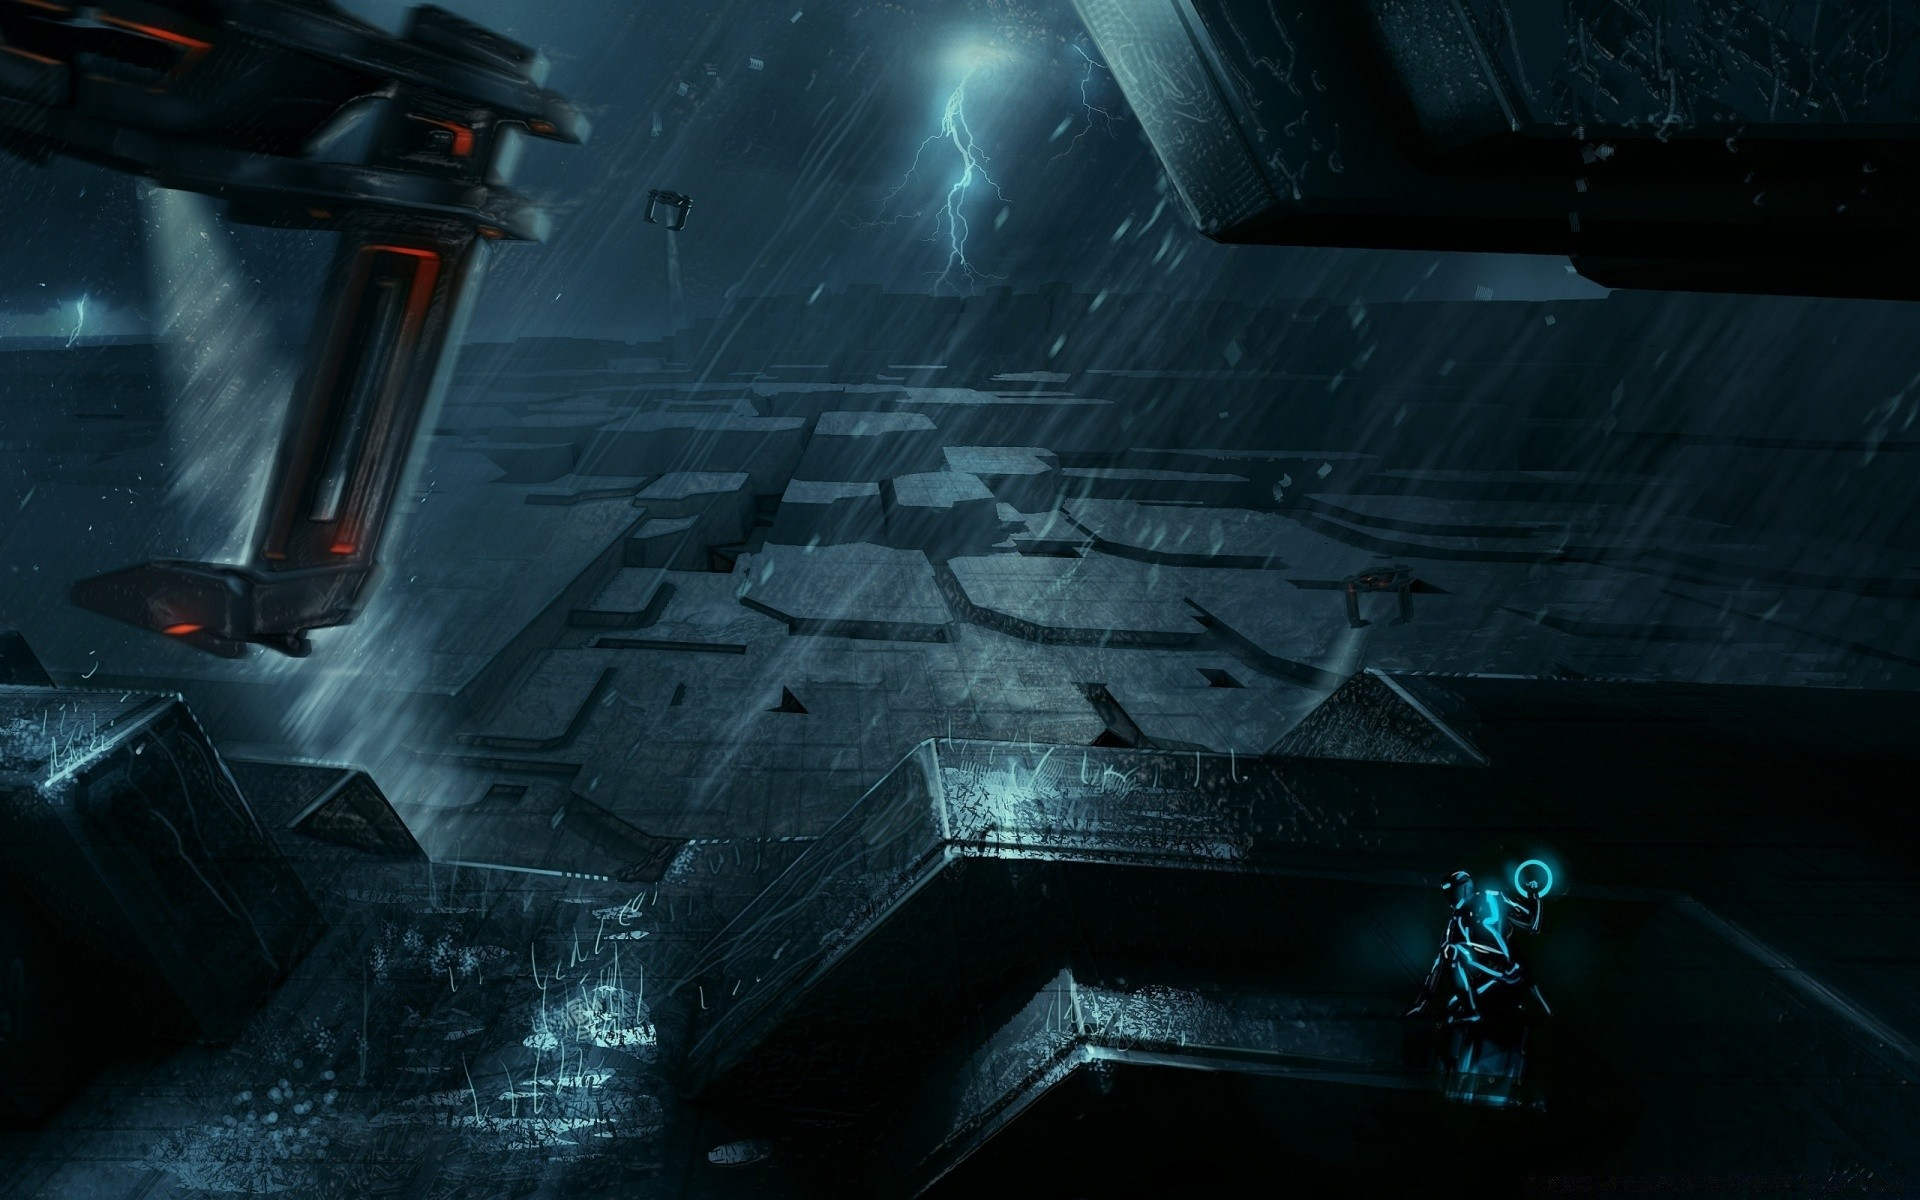 Tron Legacy Artwork Android Wallpapers For Free